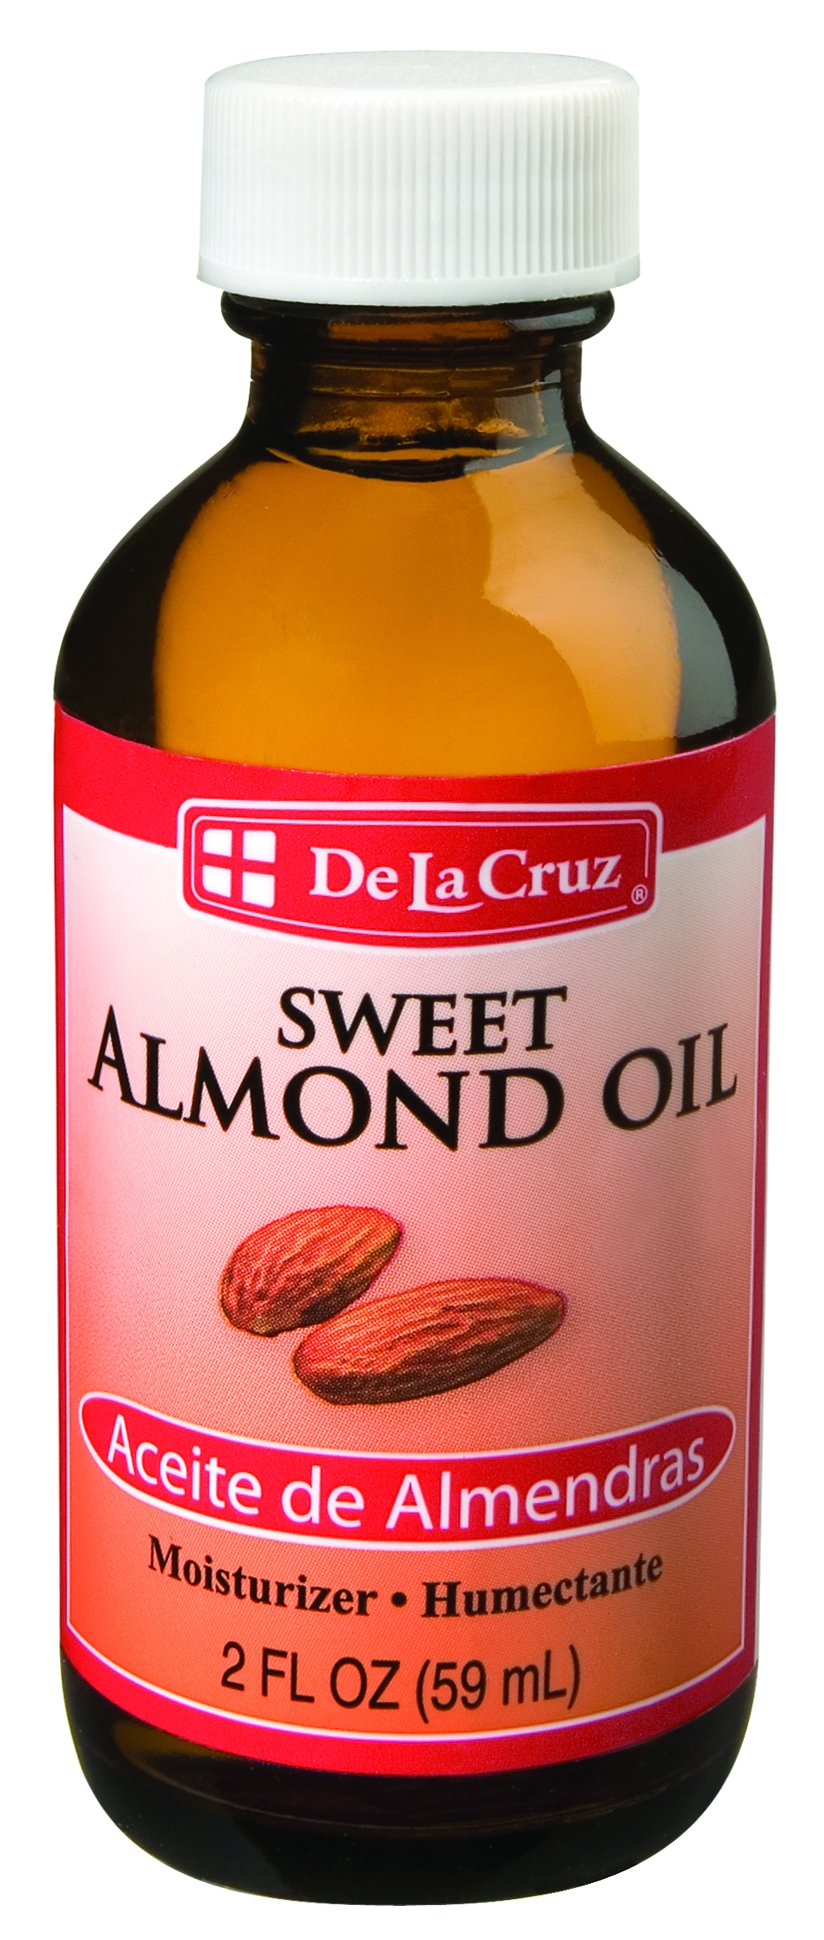 De La Cruz Sweet Almond Oil, No Preservatives Or Artificial Colors, Expeller-Pressed